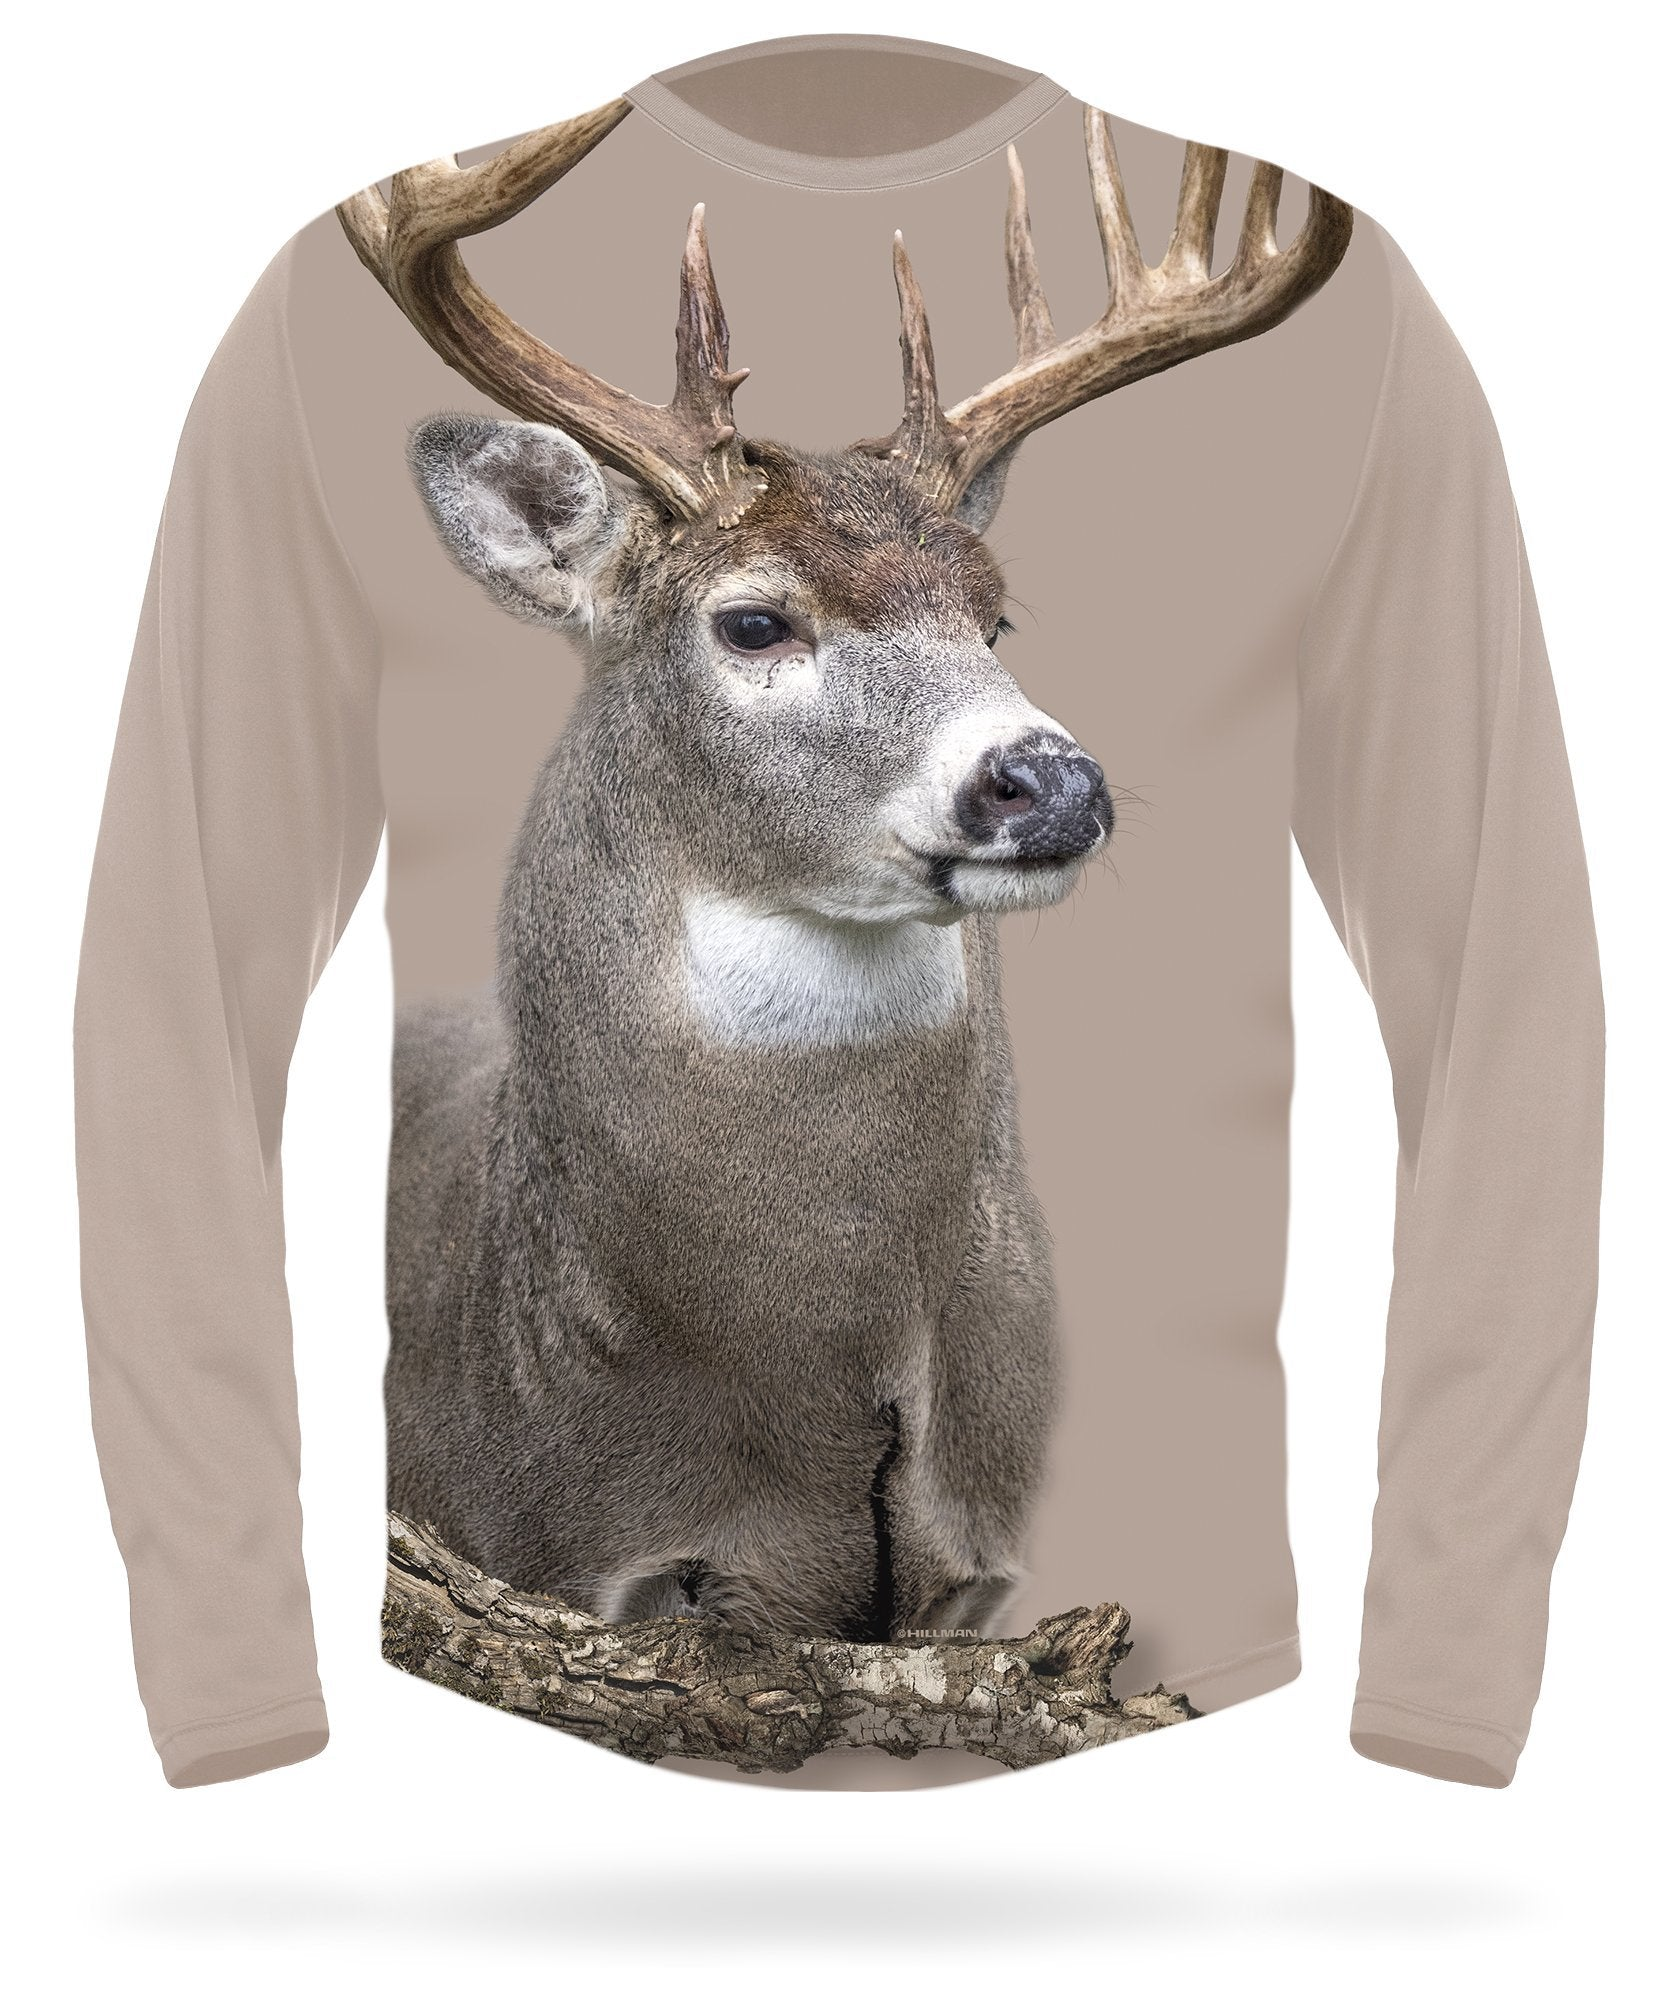 Whitetail Deer T-shirt long sleeve - HILLMAN® hunting gear